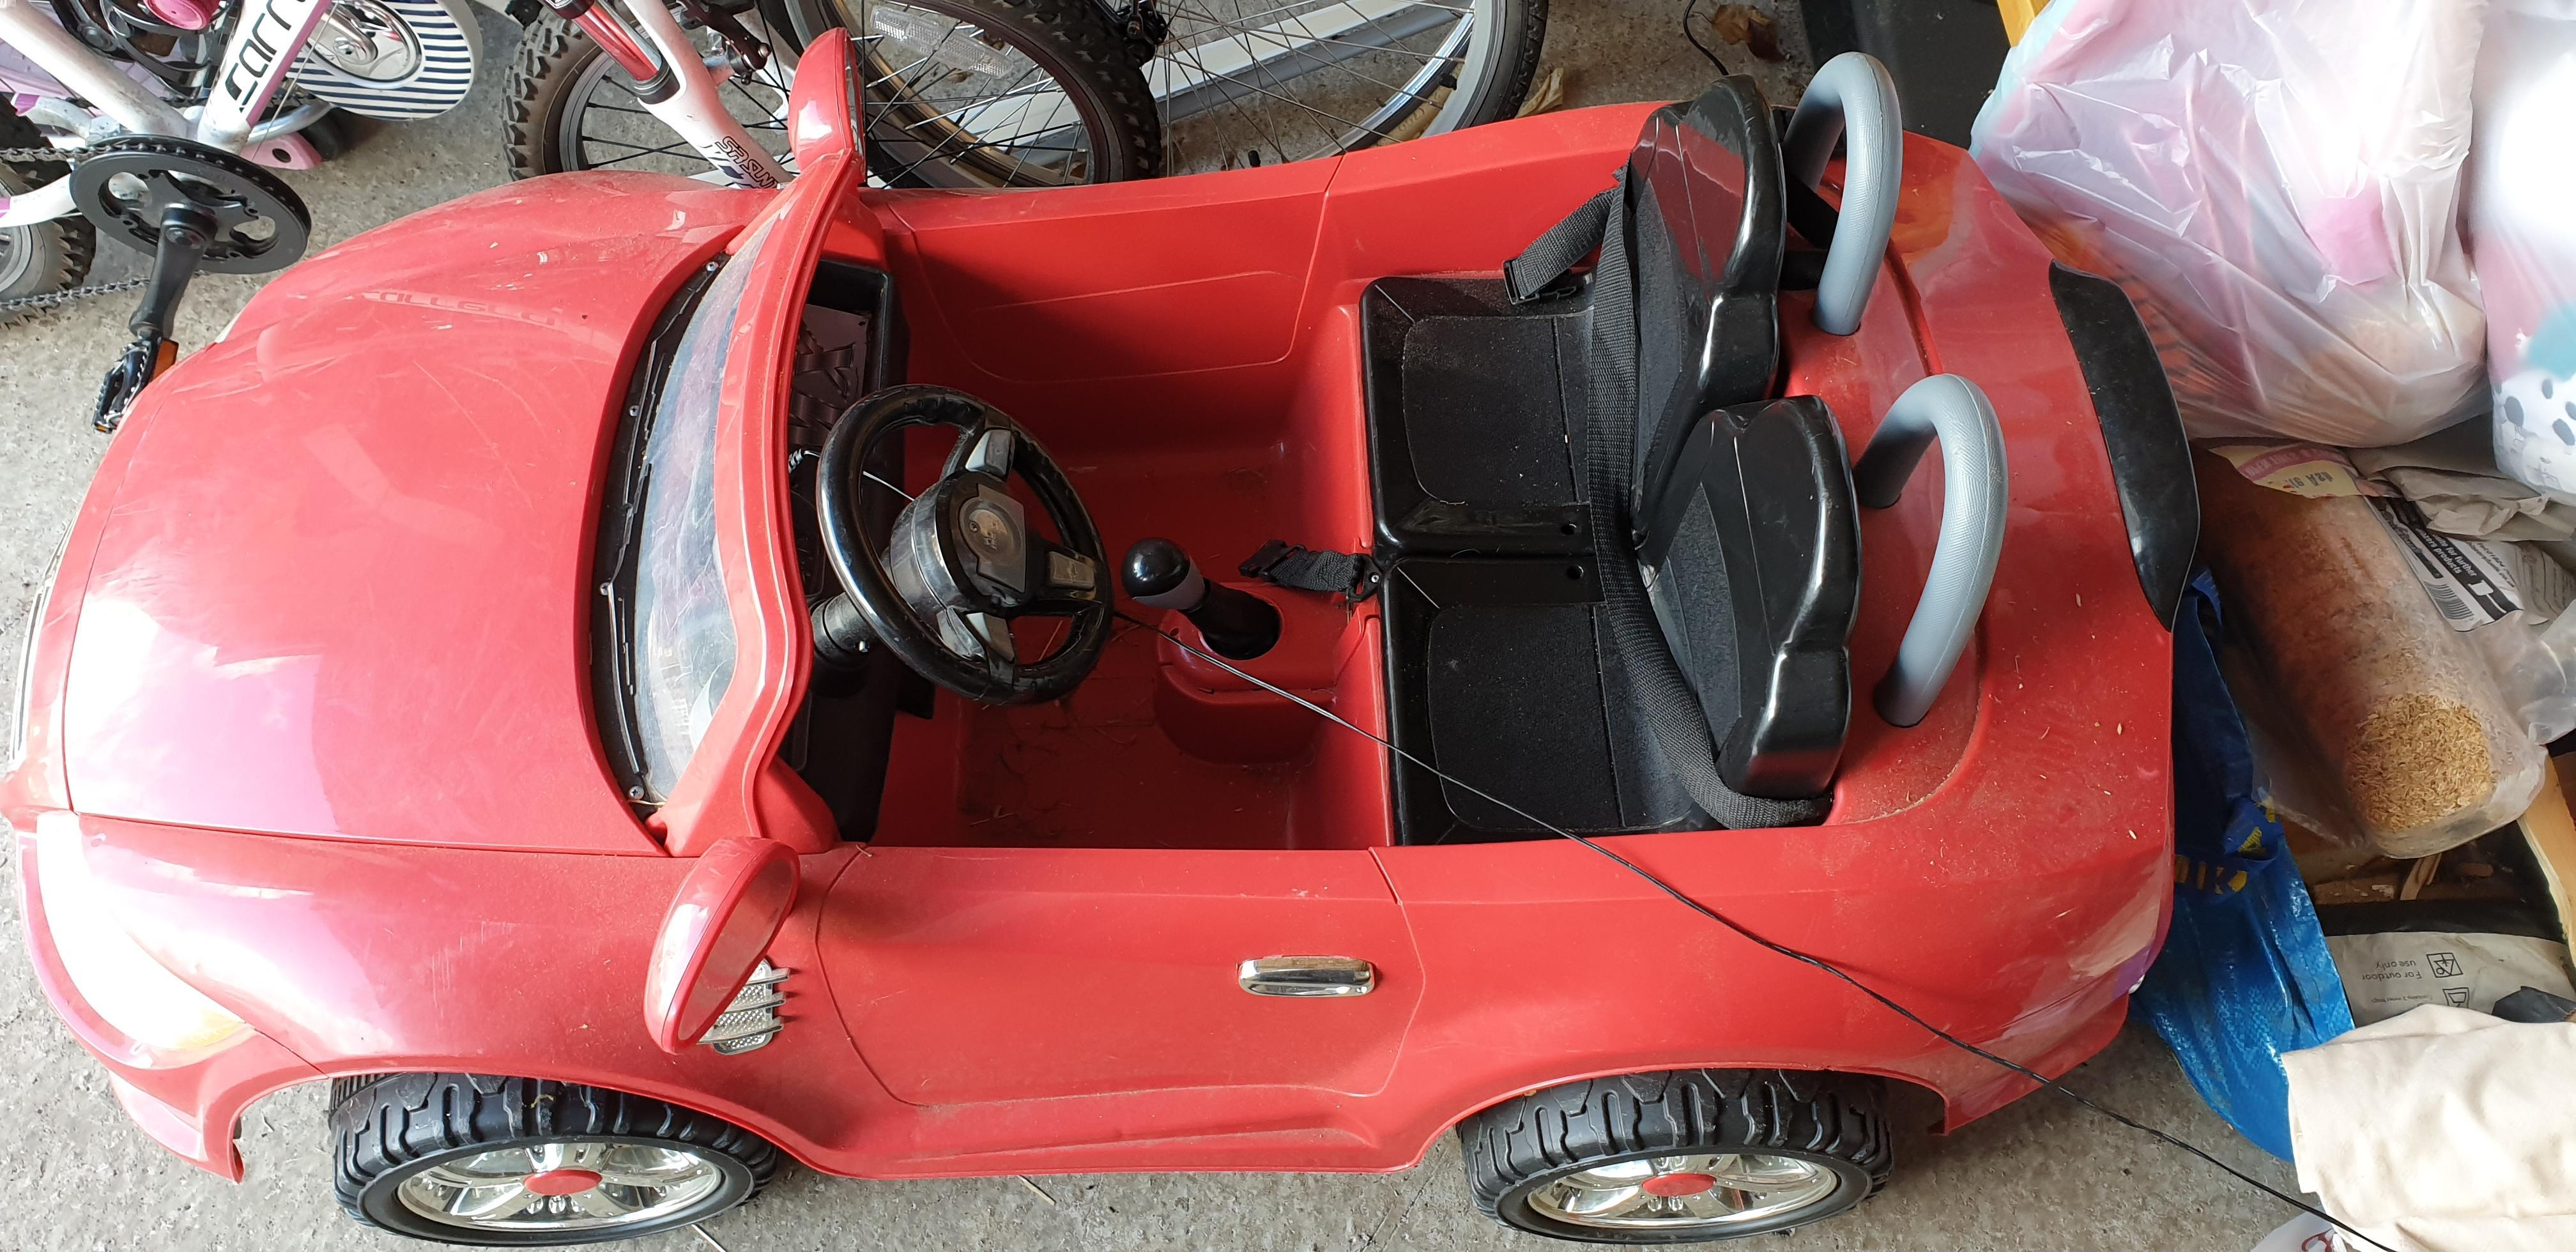 Electric car with two seats